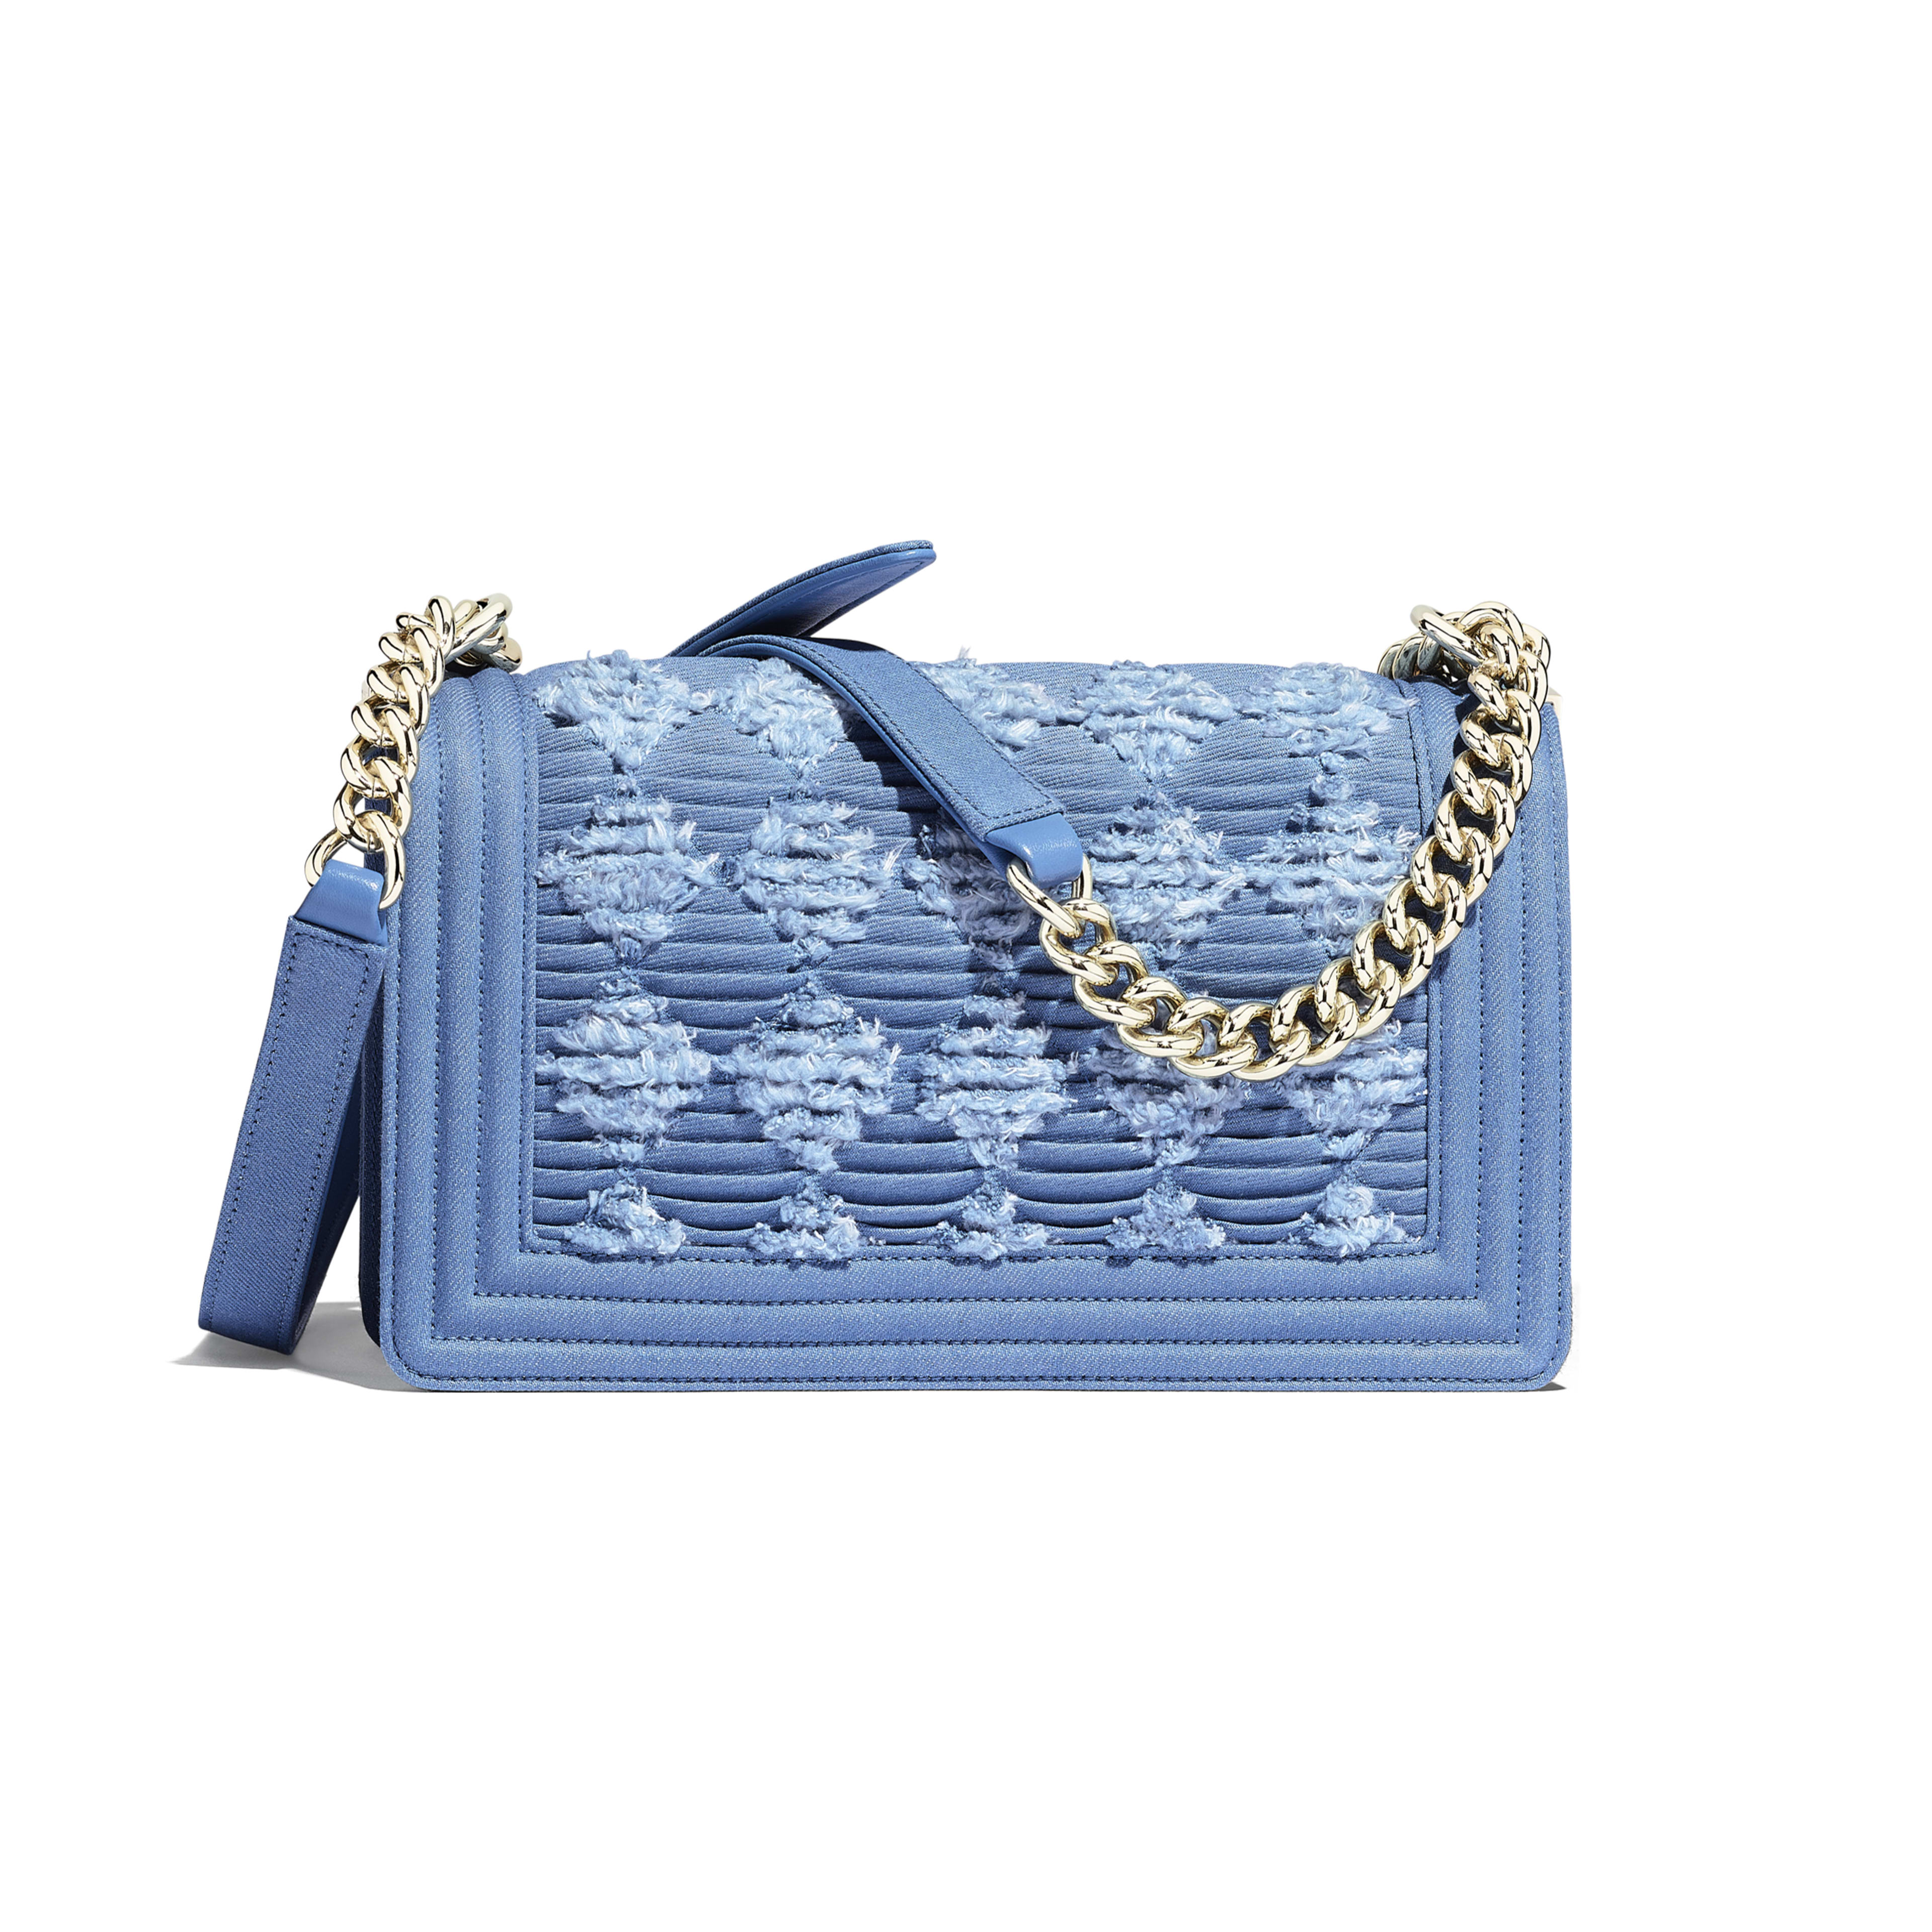 BOY CHANEL Handbag - Light Blue - Pleated Denim & Gold-Tone Metal - Alternative view - see full sized version